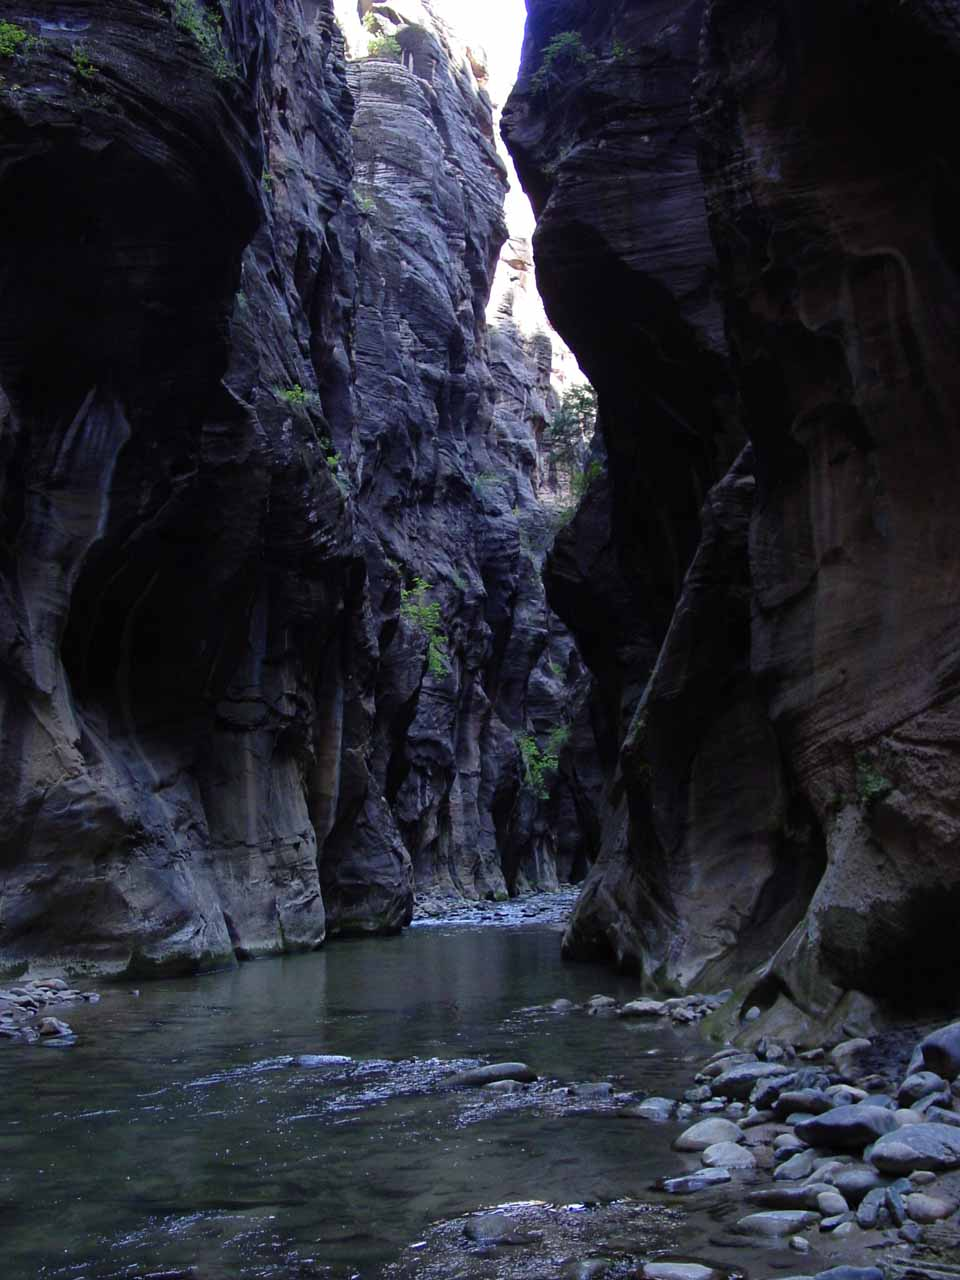 More scenery of the Narrows